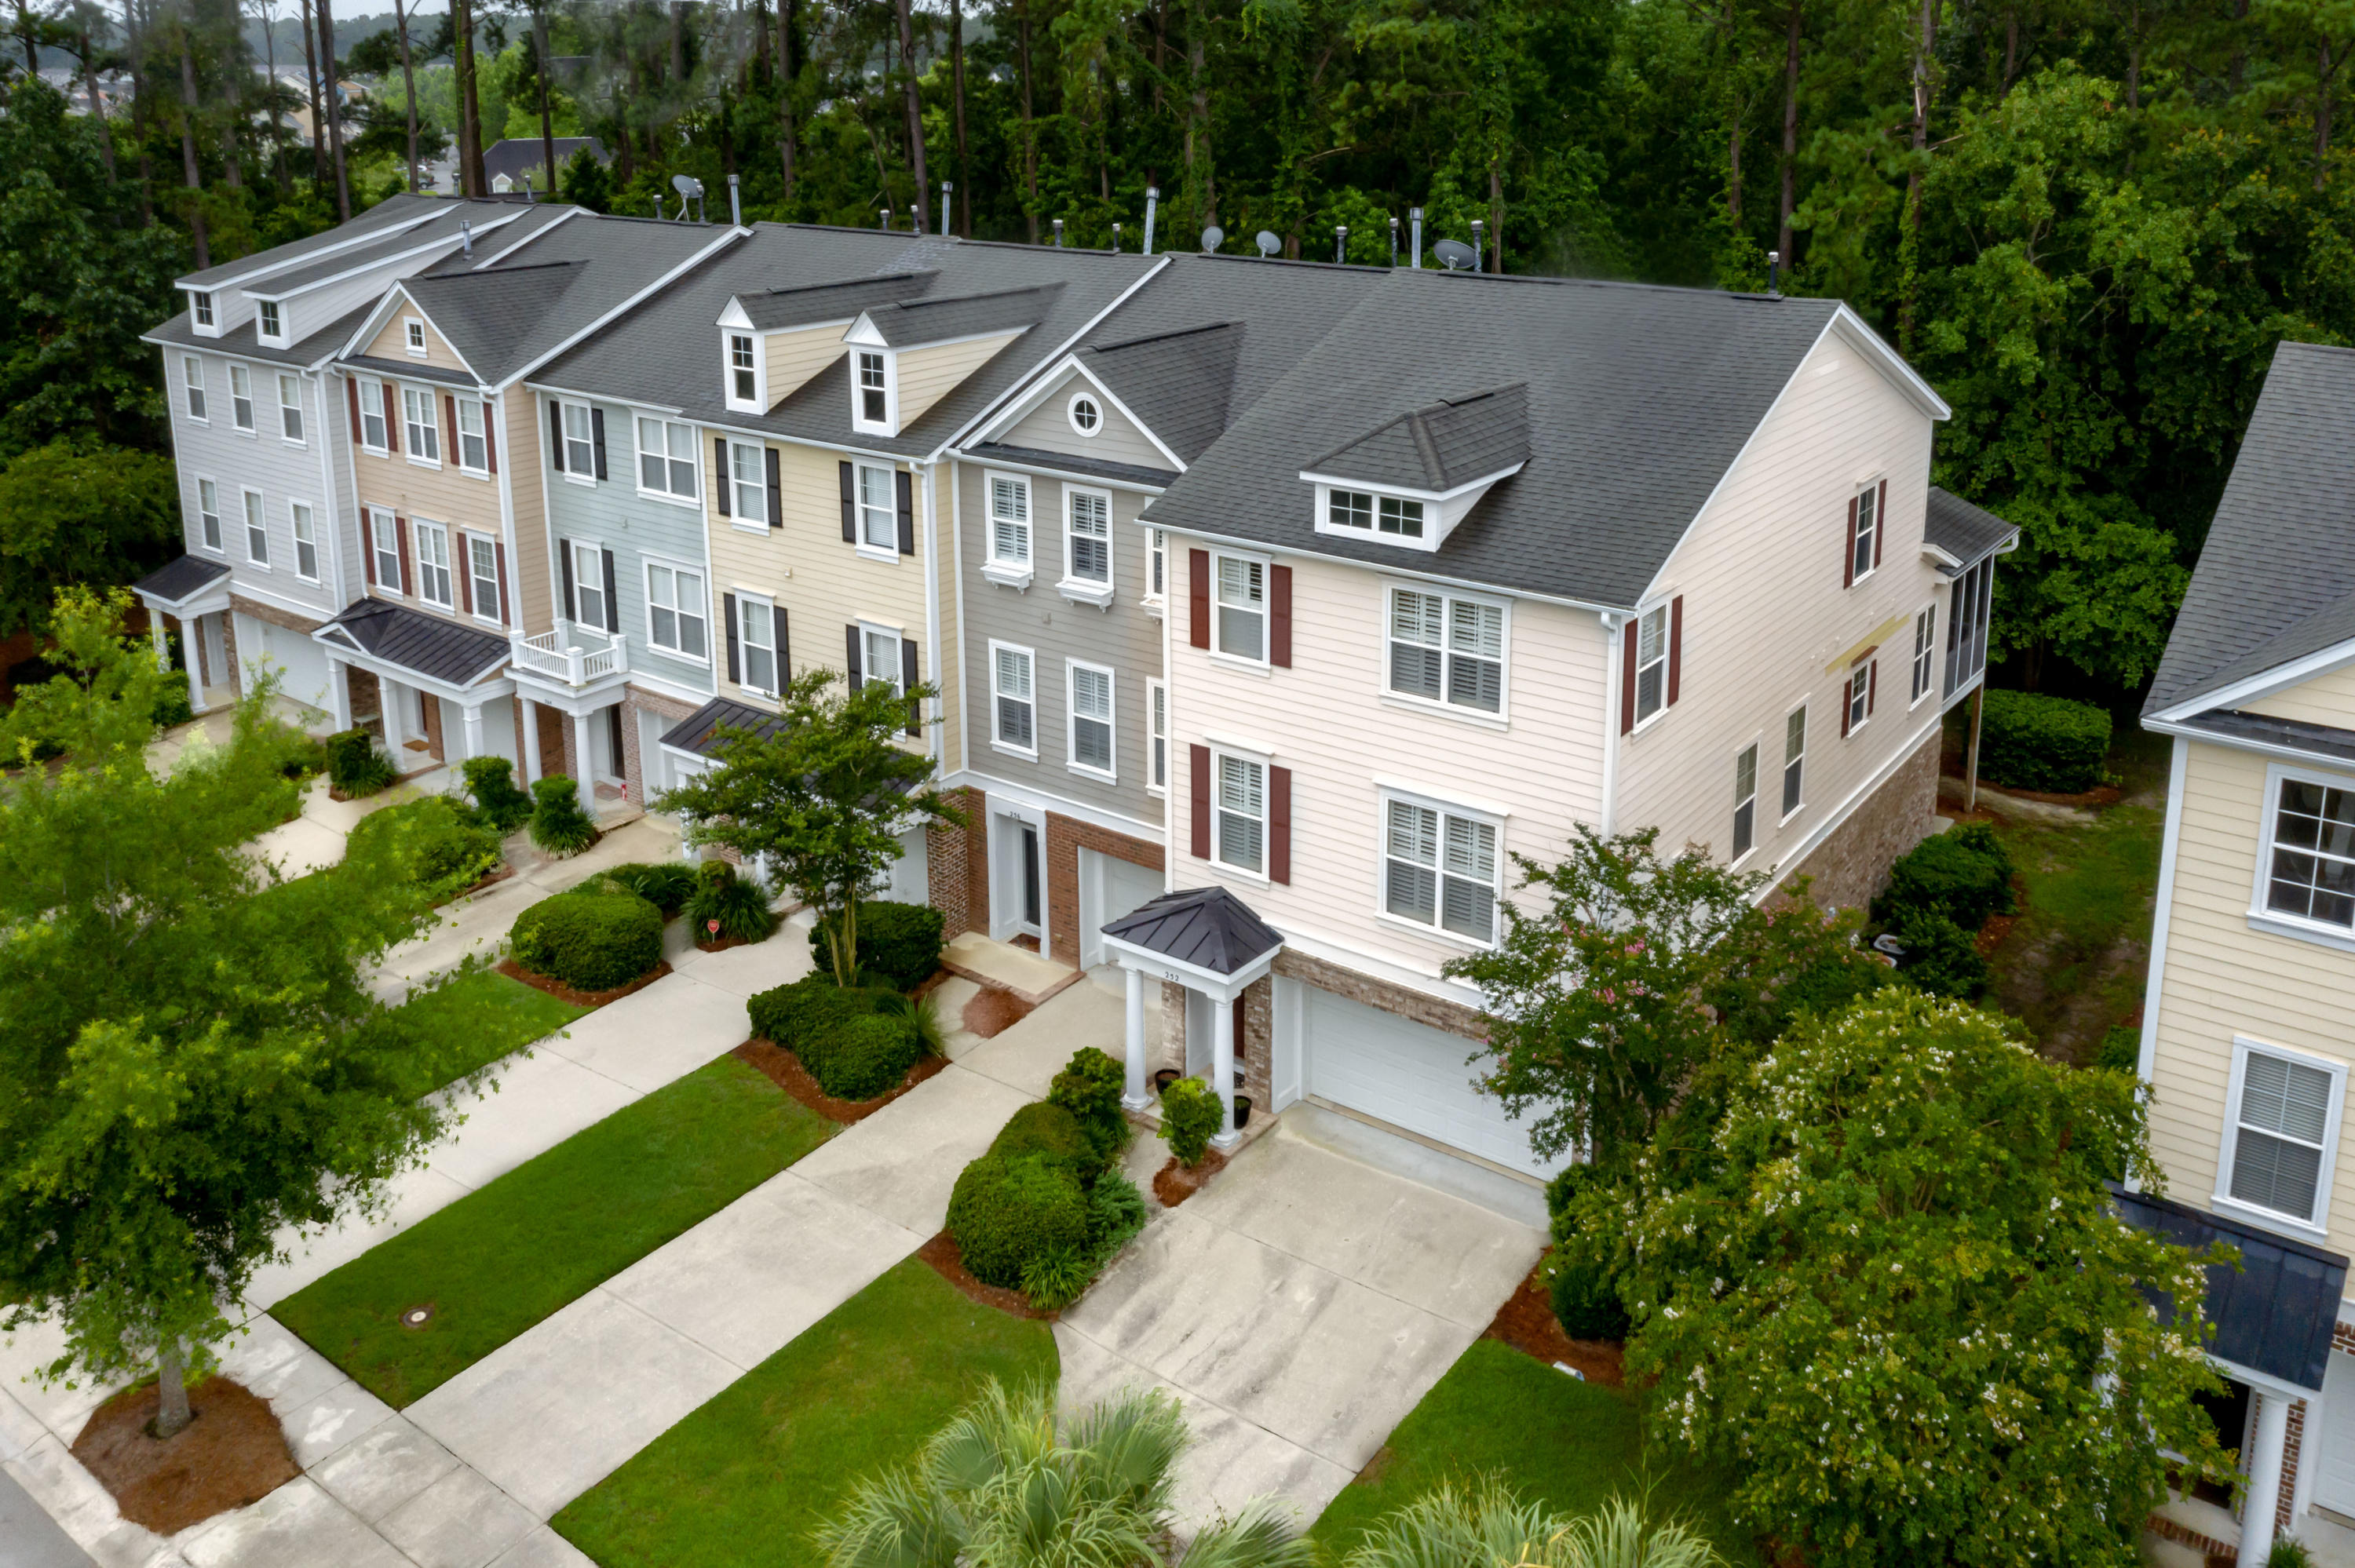 Dunes West Homes For Sale - 252 Fair Sailing, Mount Pleasant, SC - 13